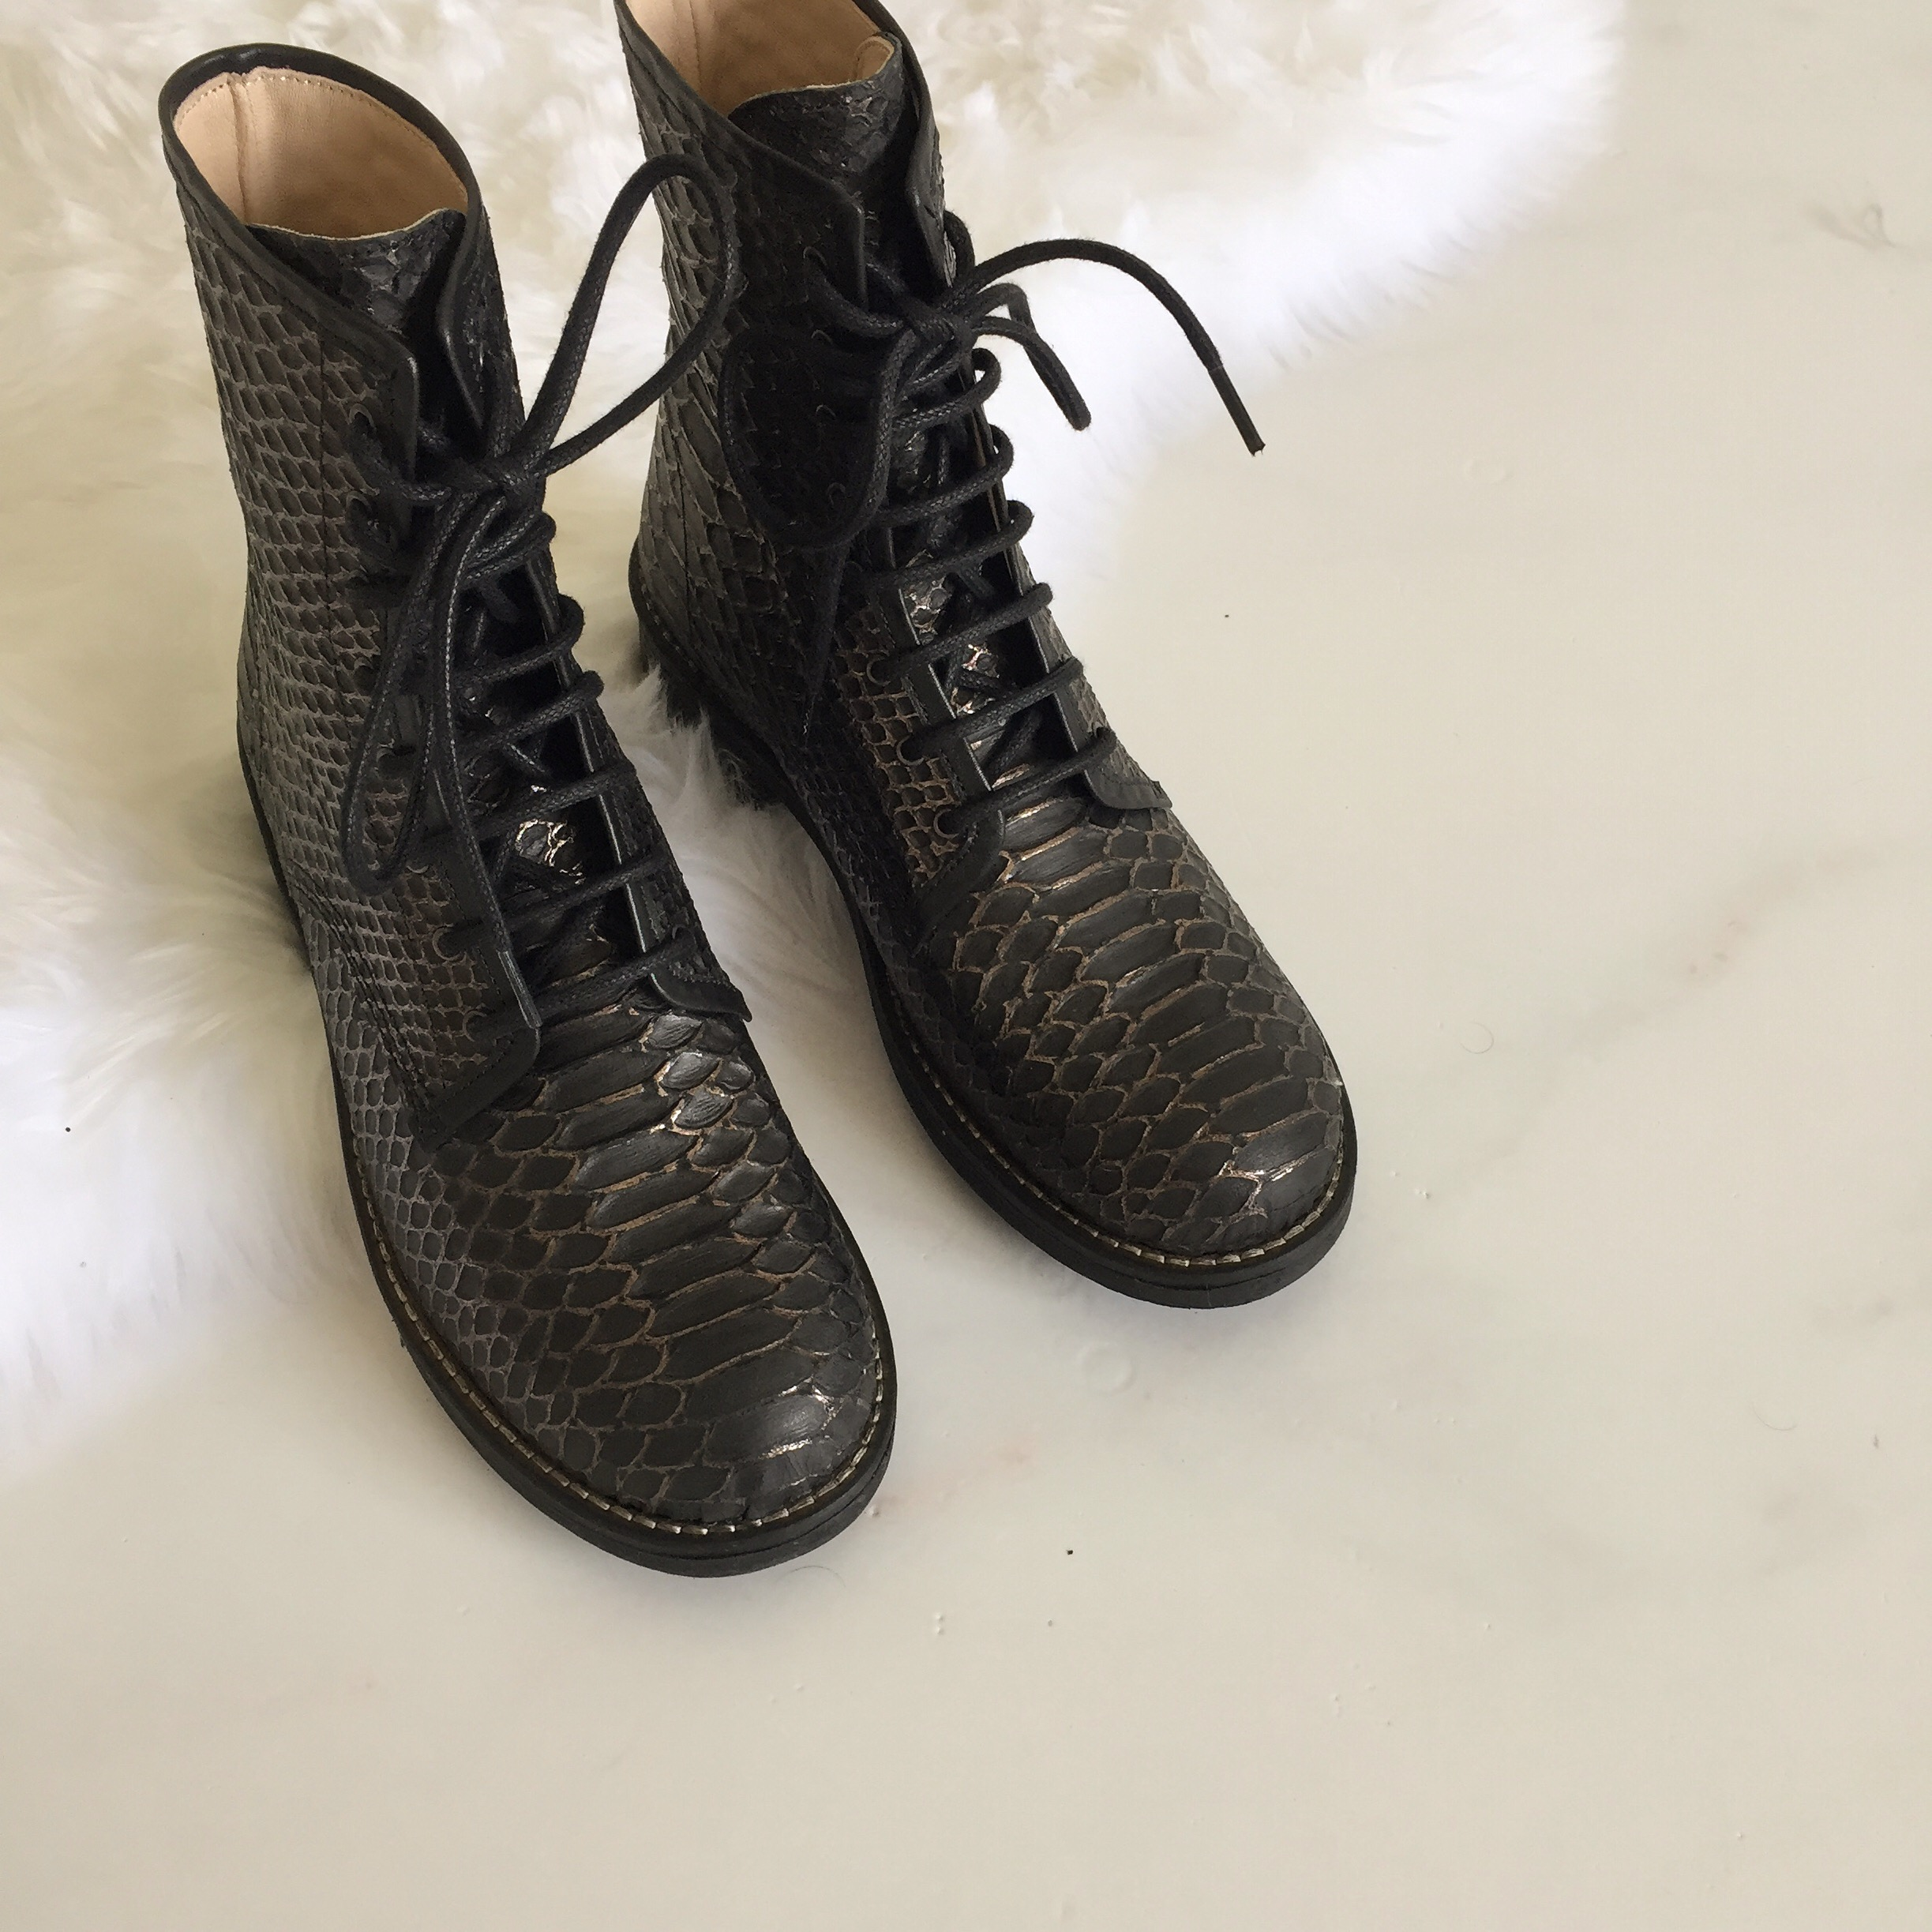 ´Army´ Black Snake Boots